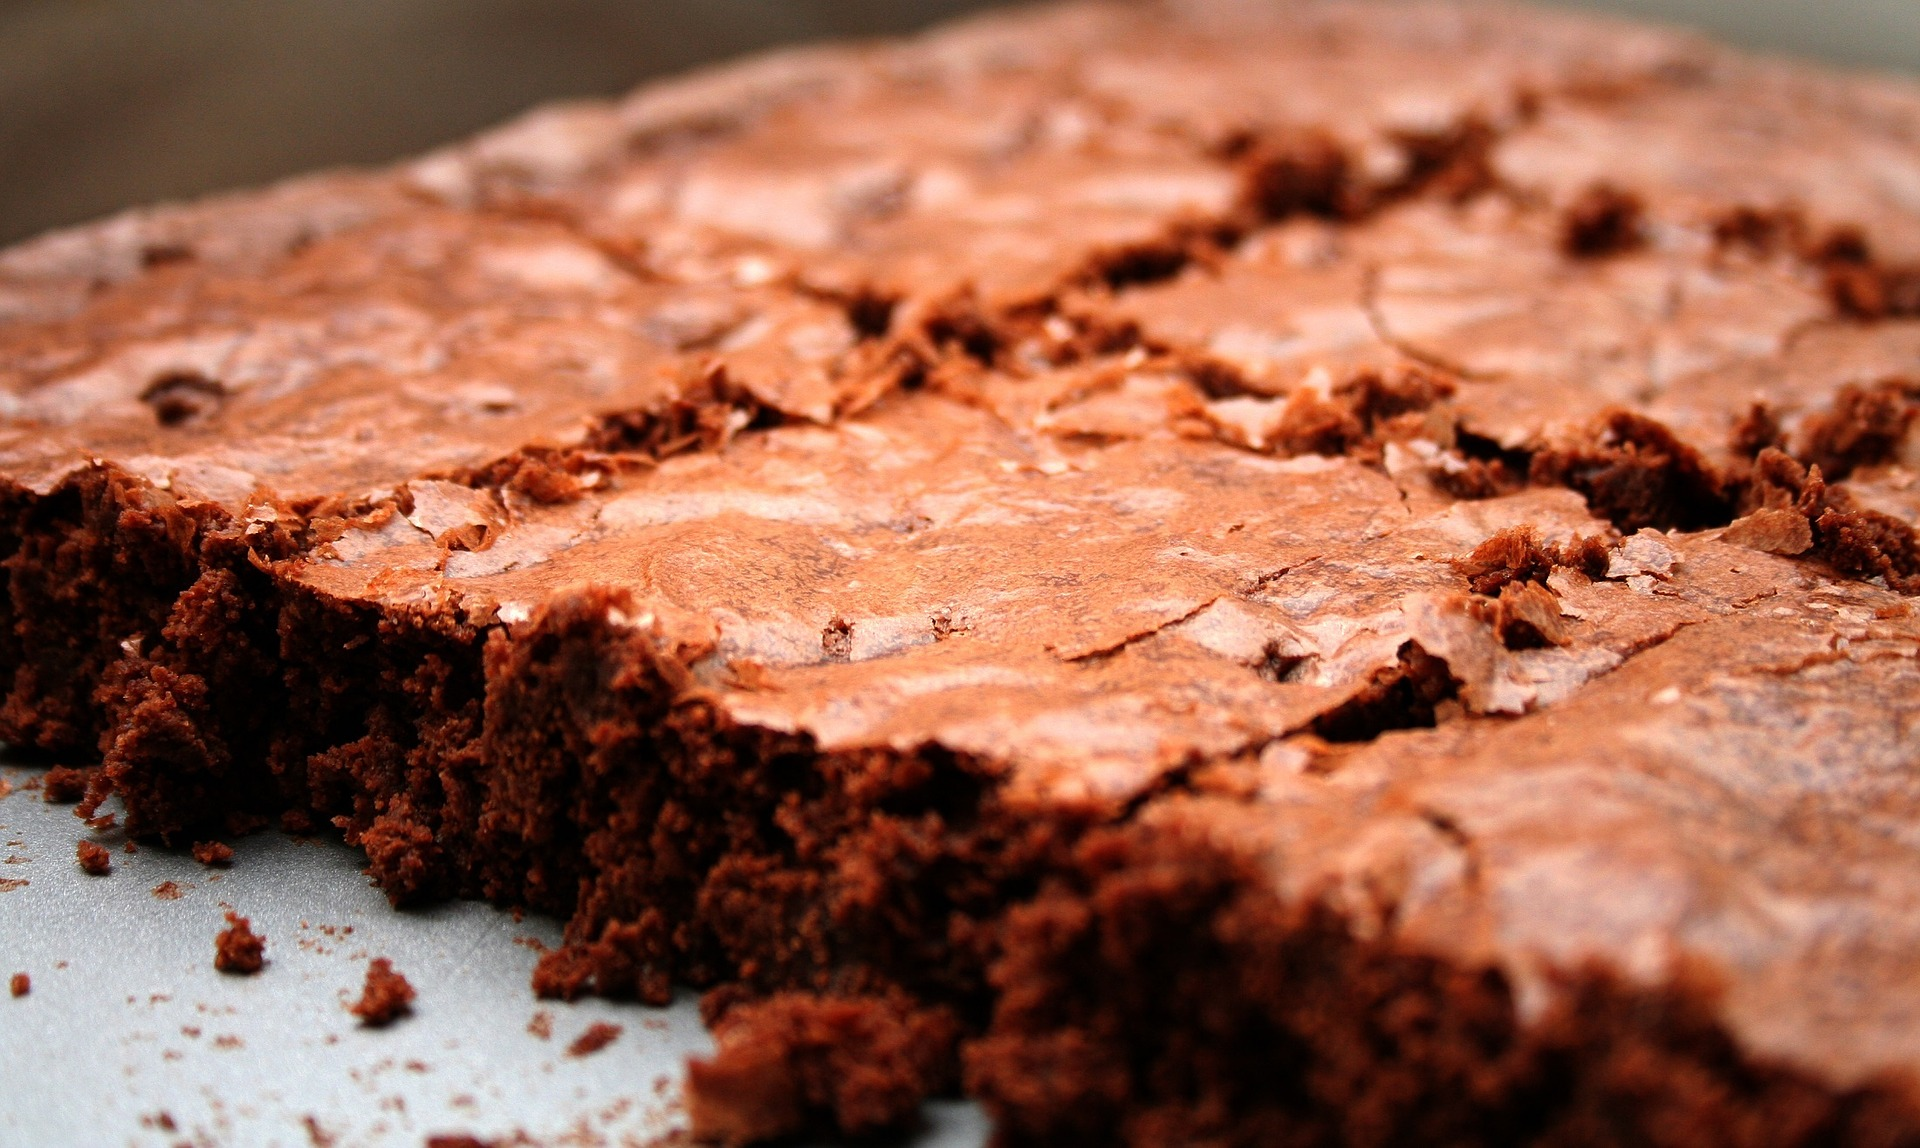 fudge-brownies-1235430_1920_1554757507267.jpg